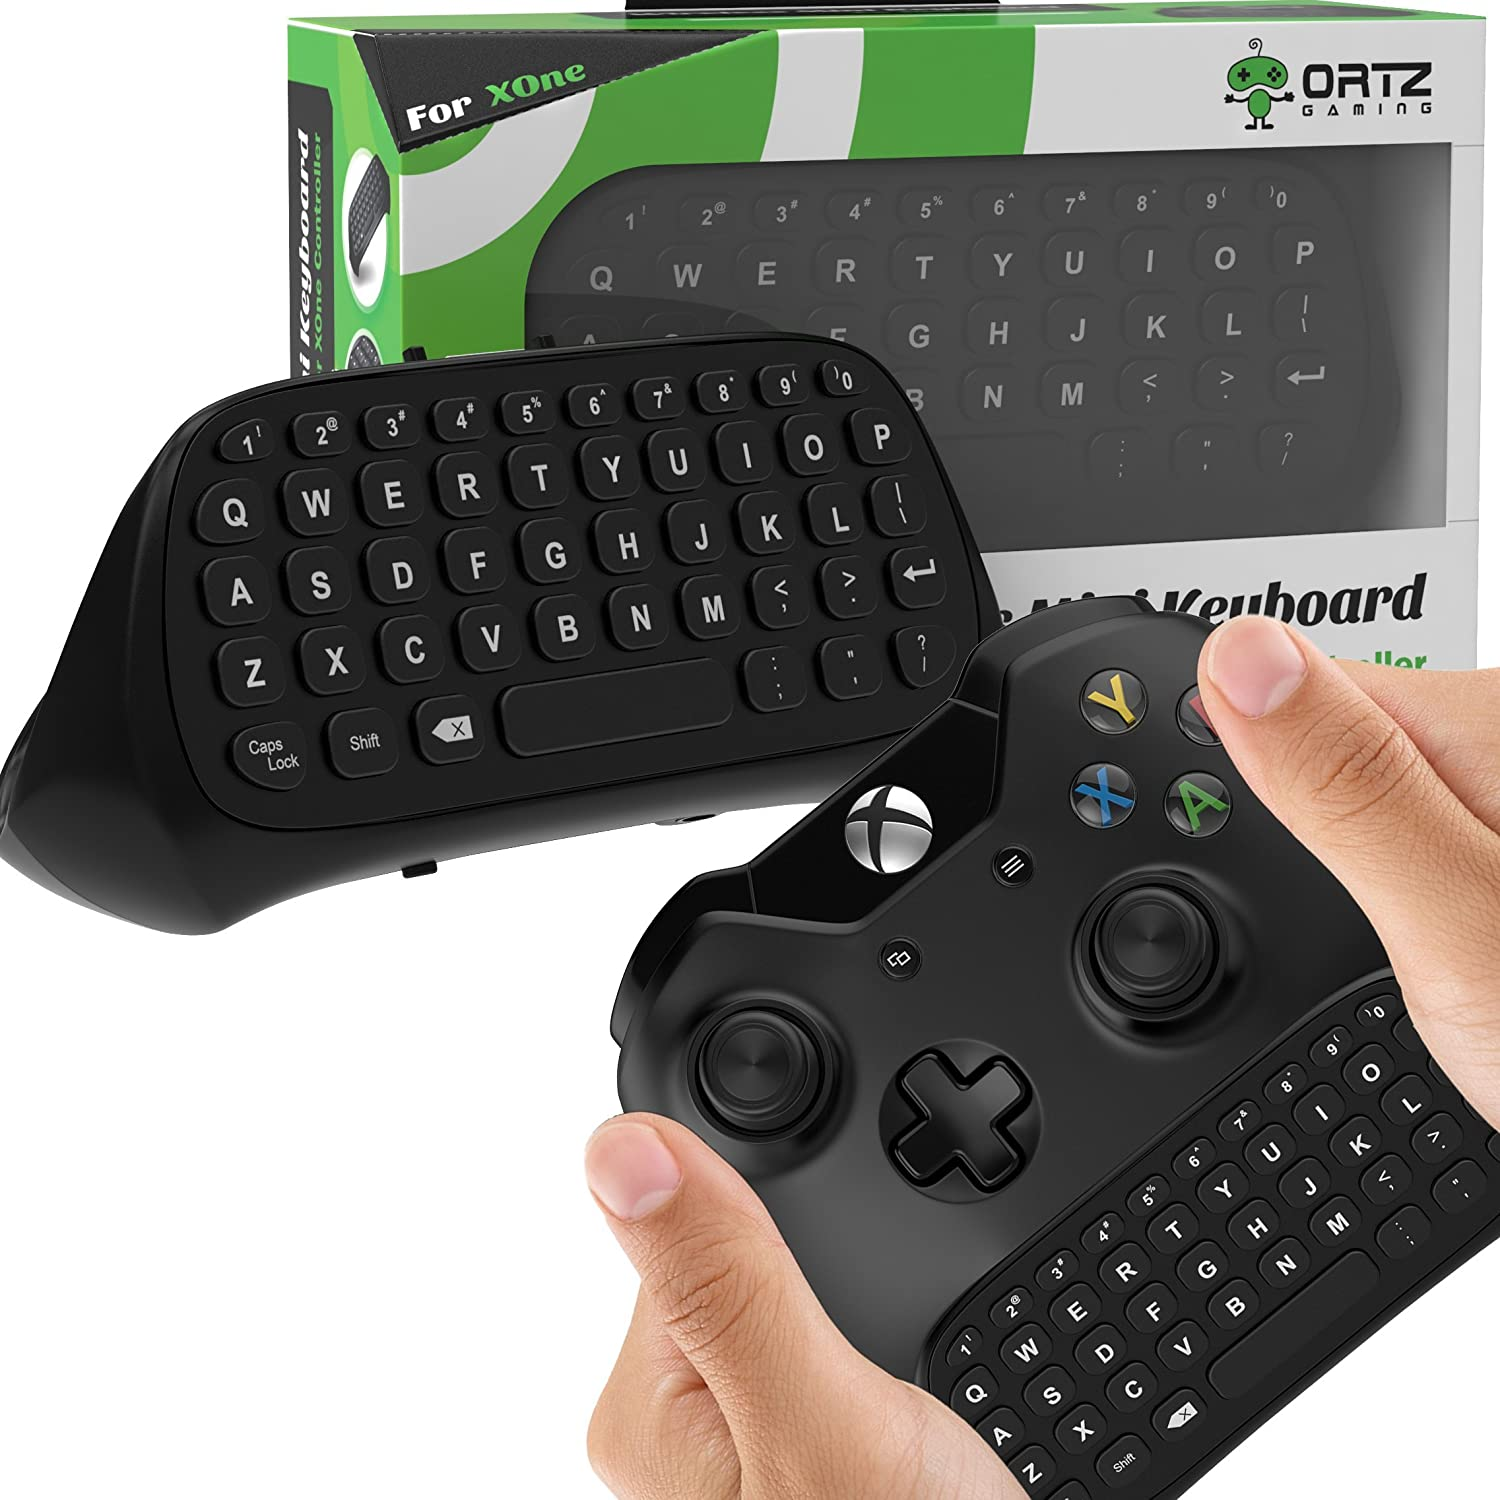 Ortz Xbox One Chatpad Keyboard KeyPad (with Headset/Audio Jack) Best for Wireless Chat - Built in USB Receiver for Xbox One Game Controller - Easy Sync with your Controller